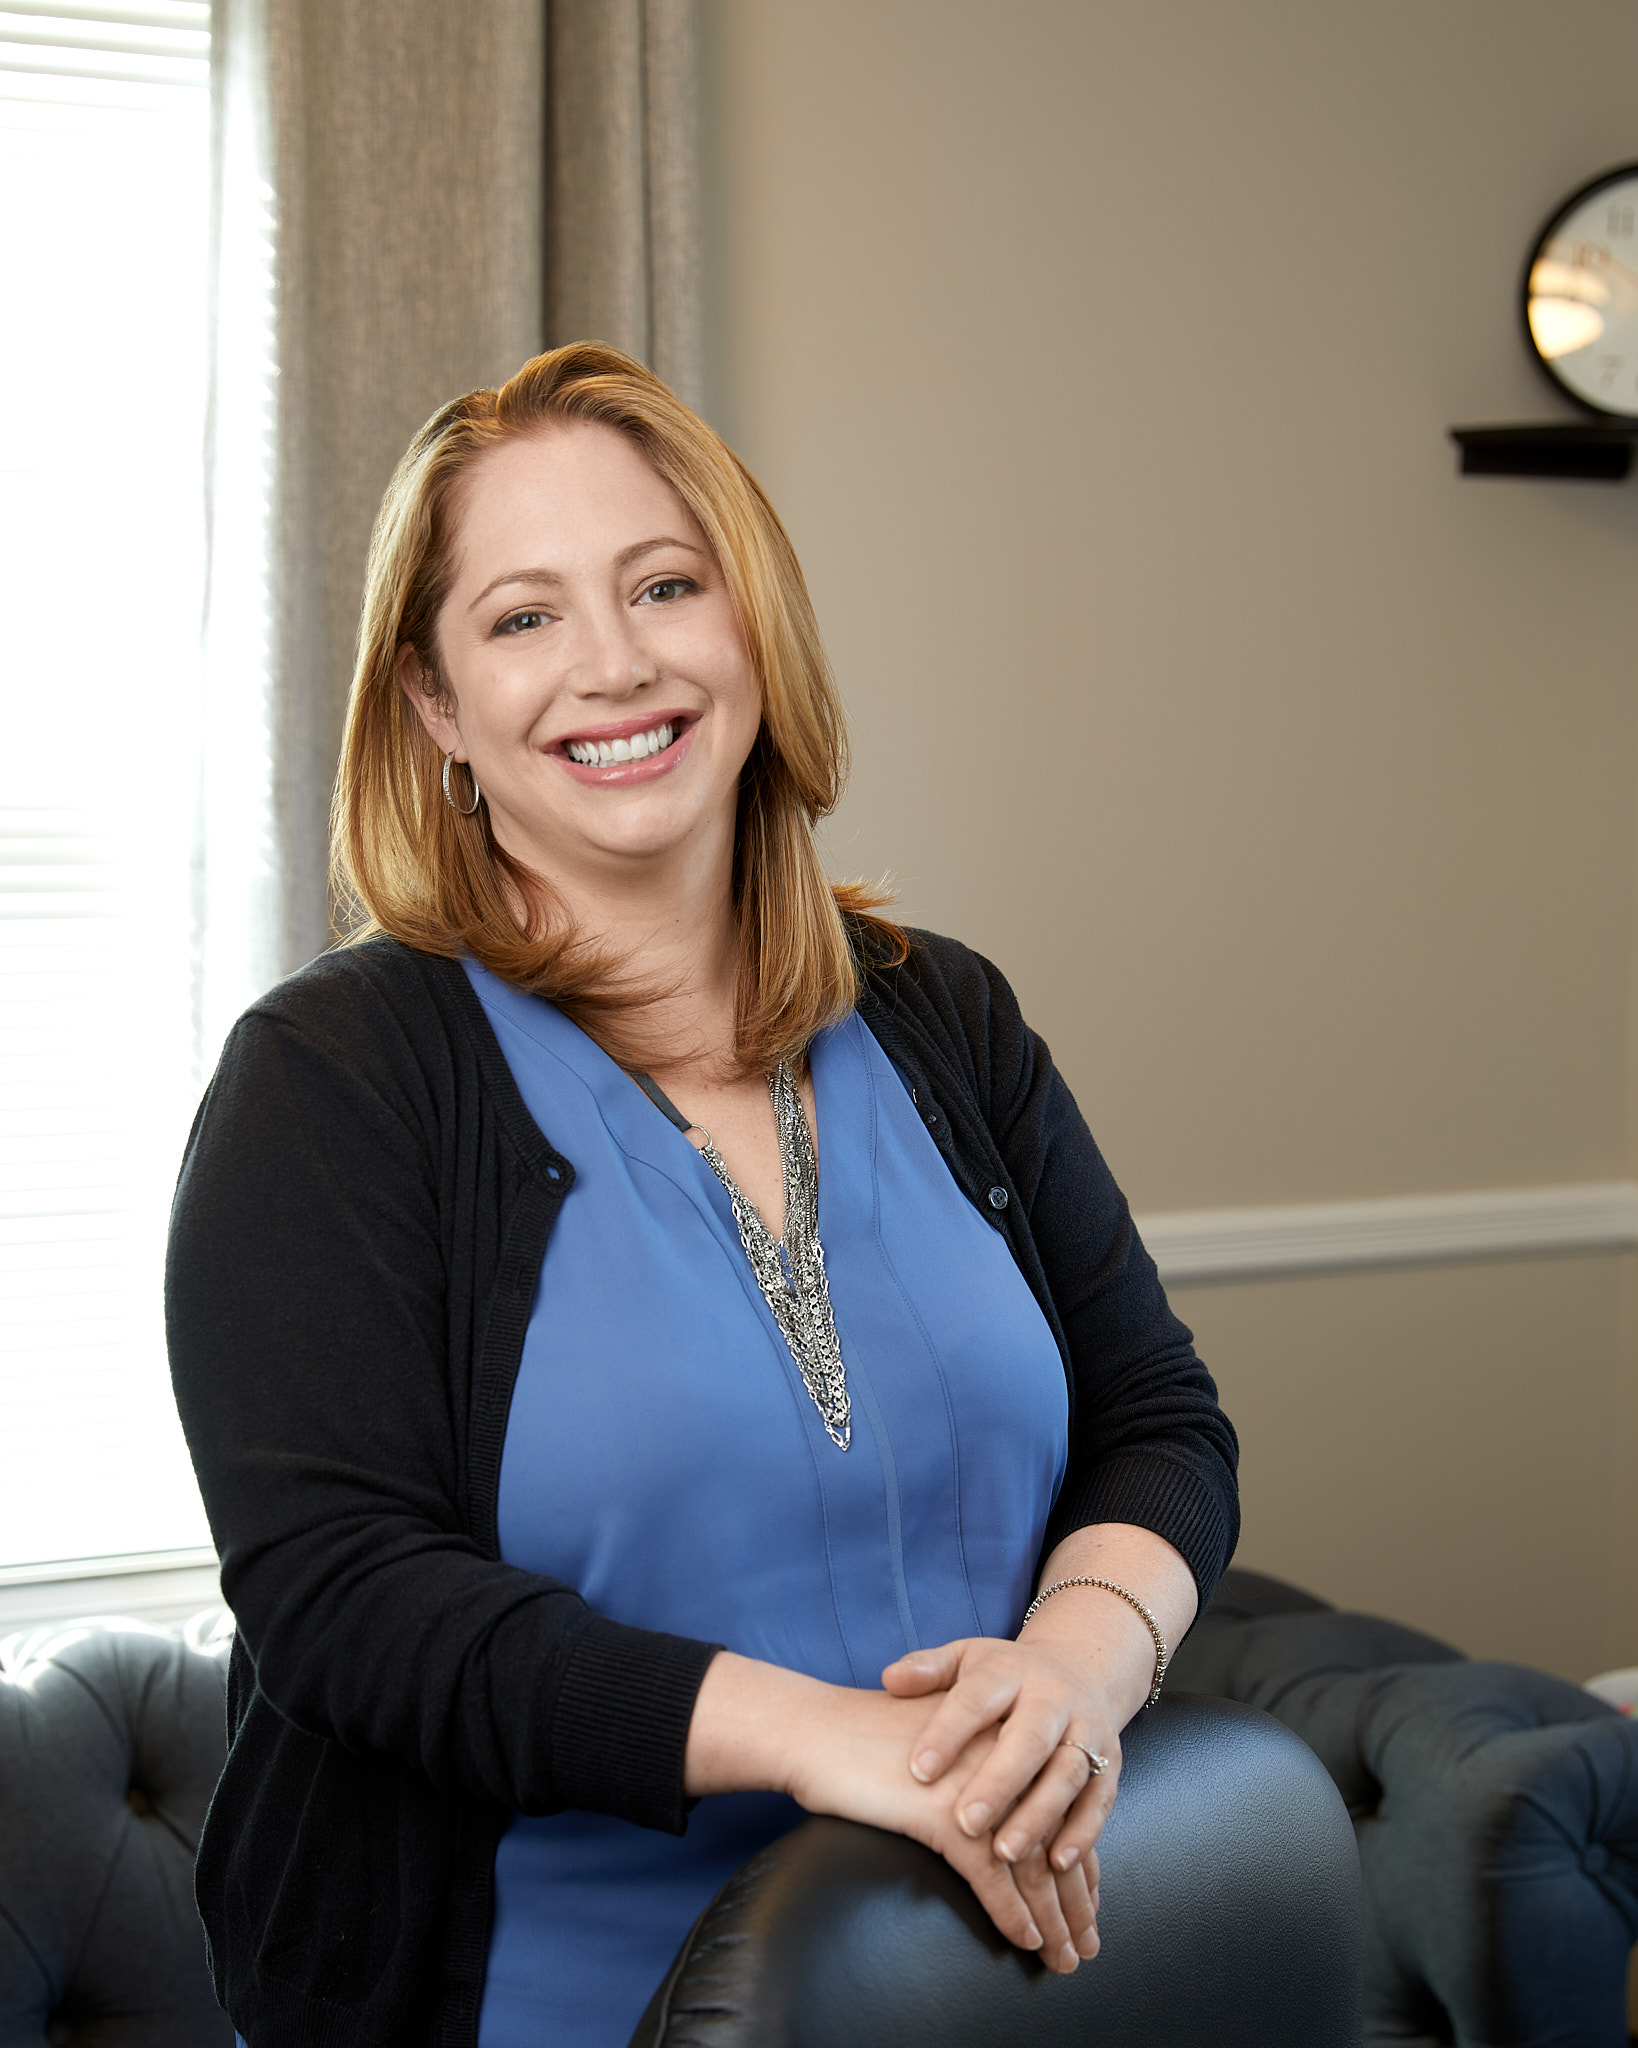 Dr Jennifer McLaren - Child Therapist At Ally Psych In Bucks County PA